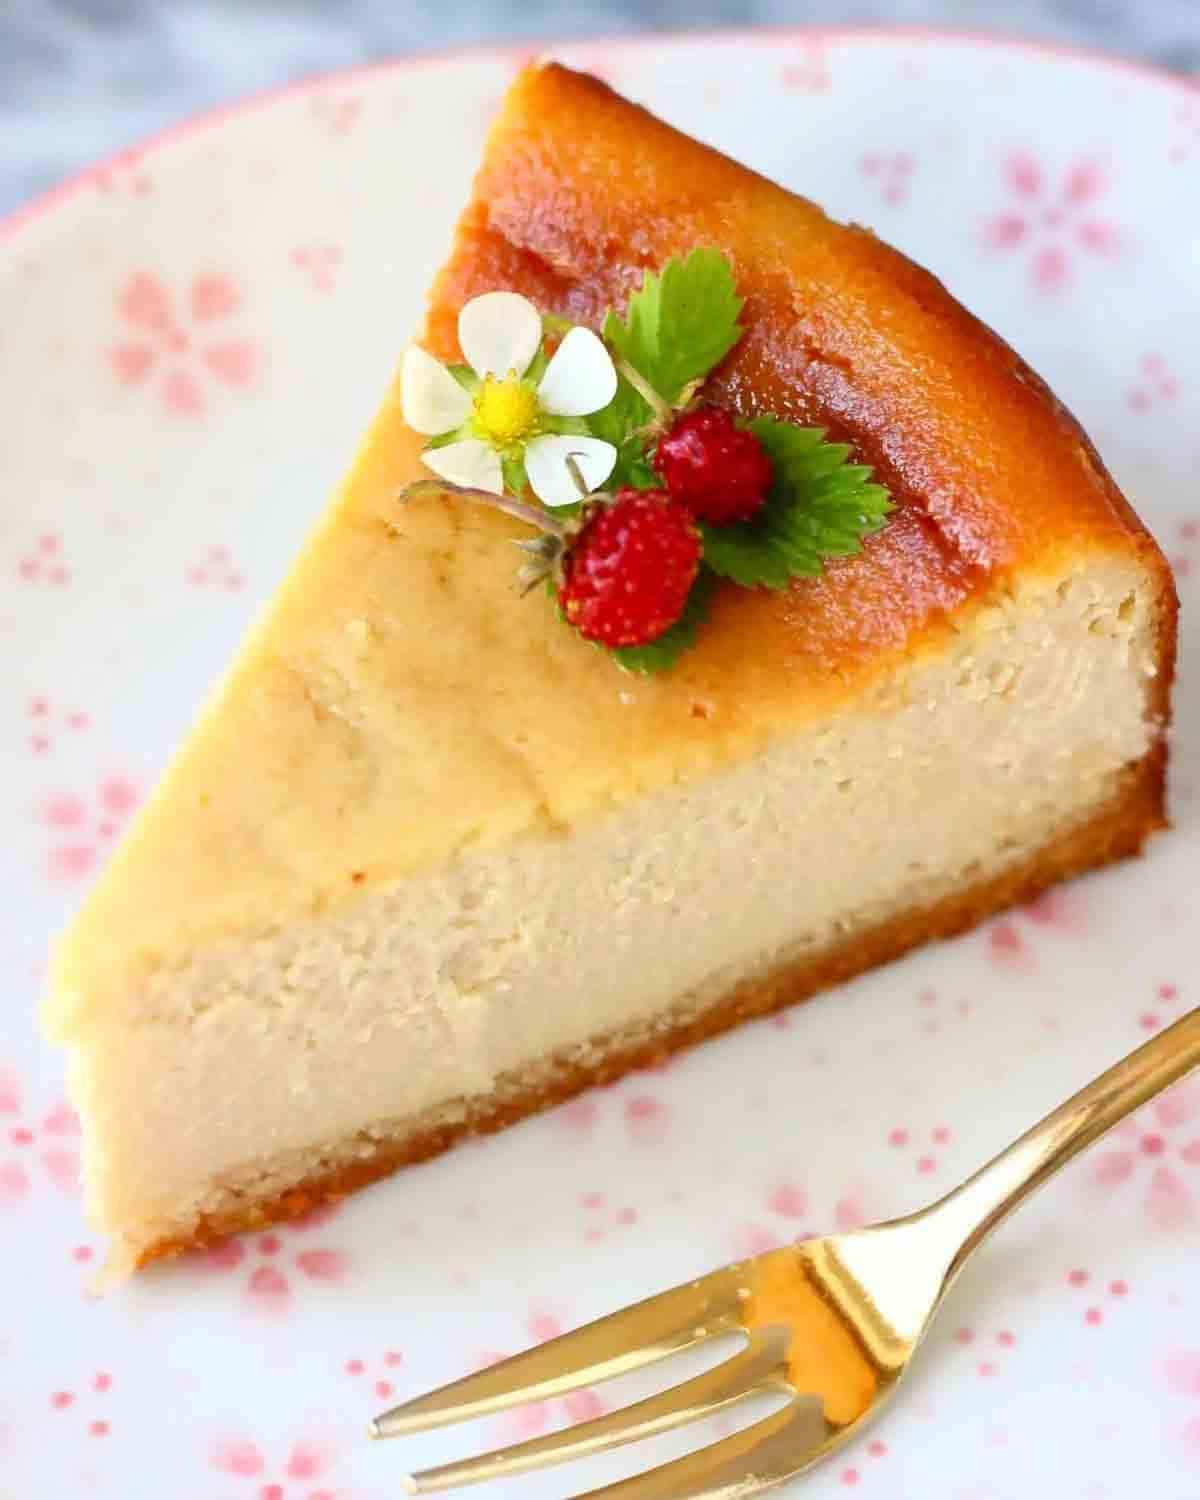 A slice of cheesecake on a white and pink floral plate with a fork.